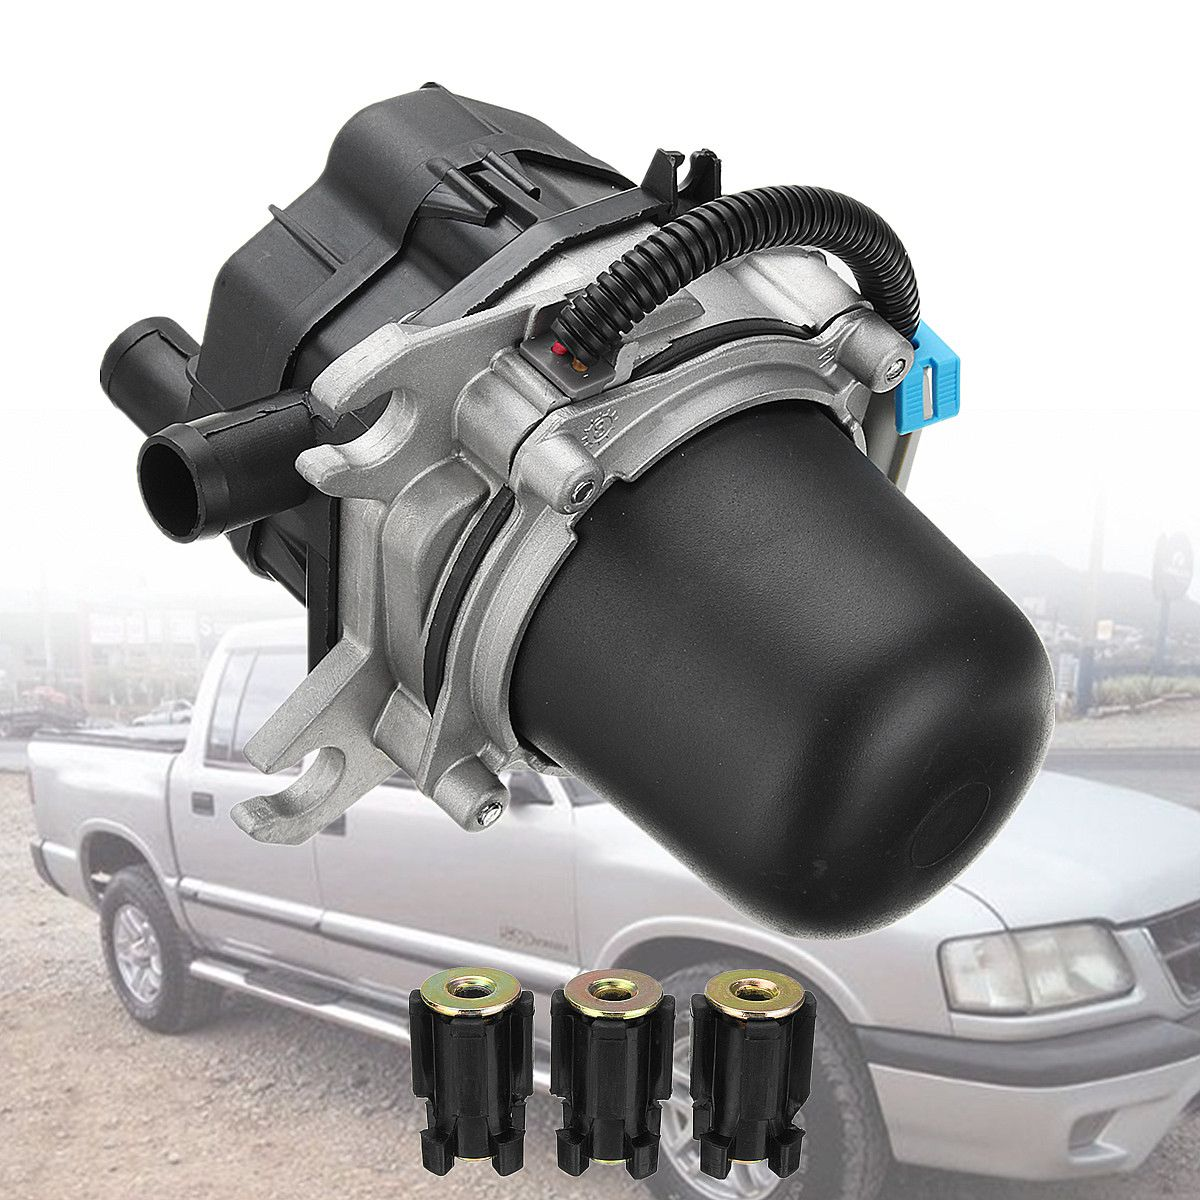 Secondary Air Injection Pump for Chevrolet S10 Blazer/GMC Sonoma Jimmy 4.3L 11.4x16x18cm 12560095 215364 AIP18 AC215417Secondary Air Injection Pump for Chevrolet S10 Blazer/GMC Sonoma Jimmy 4.3L 11.4x16x18cm 12560095 215364 AIP18 AC215417